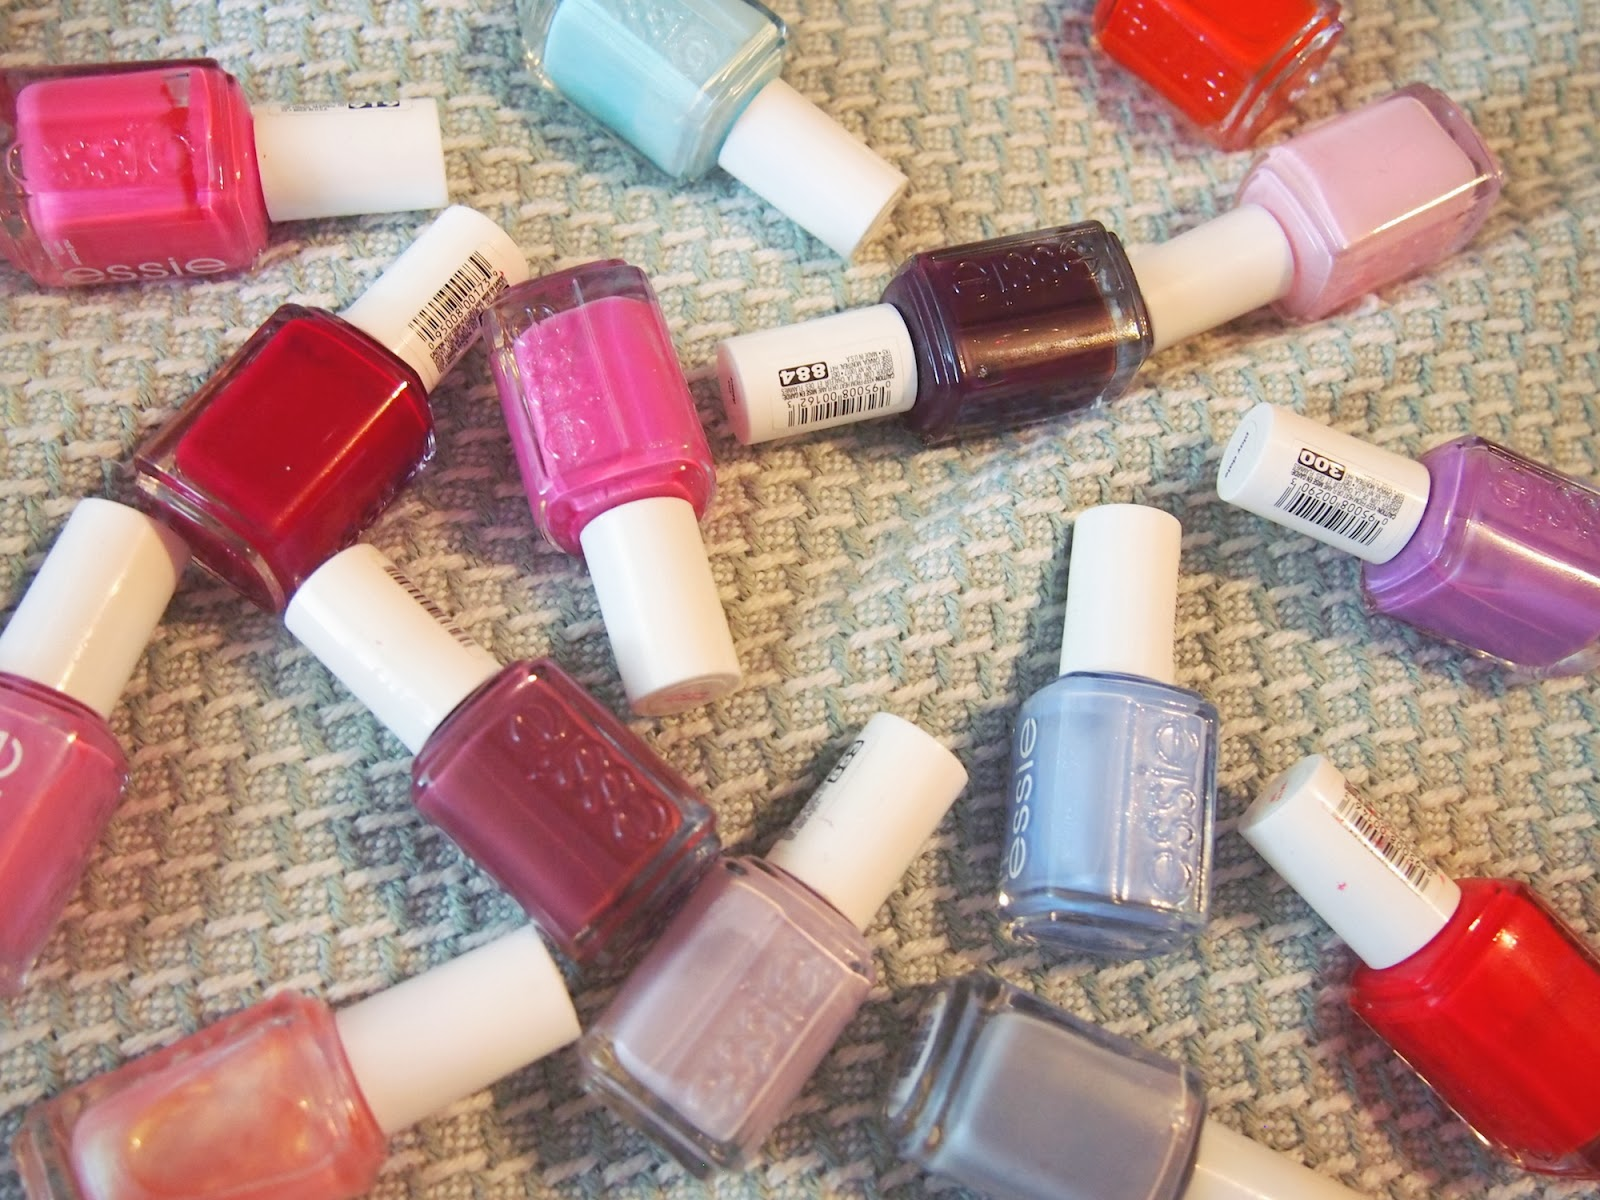 Let\'s Talk About Brands: Essie - Adore A Polish: A simple beauty blog